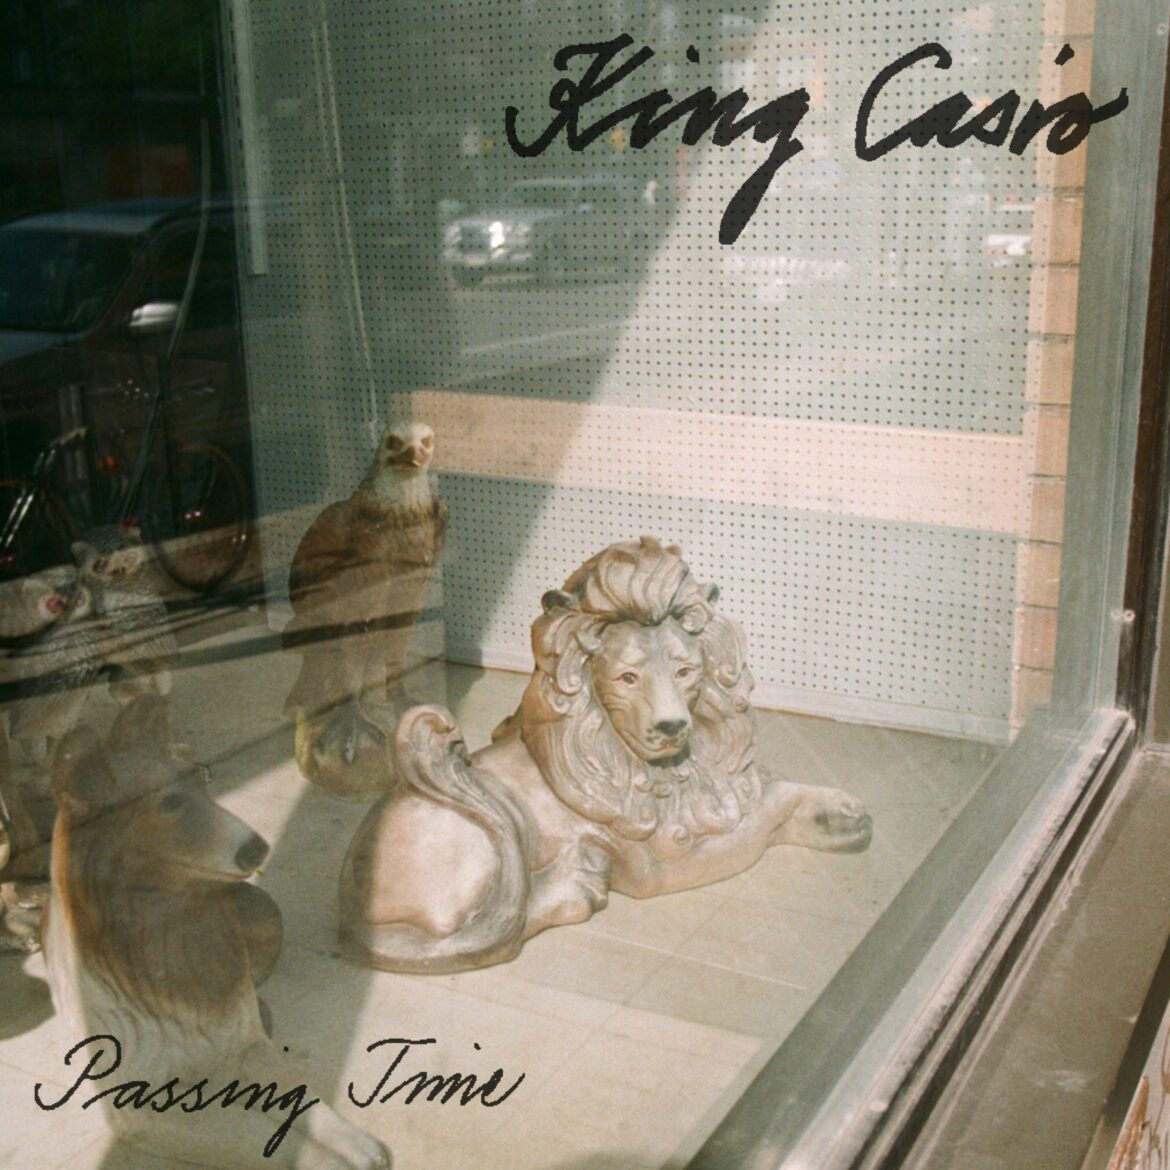 EXCLUSIVE PREMIERE: King Casio release new video and single 'Passing Time'